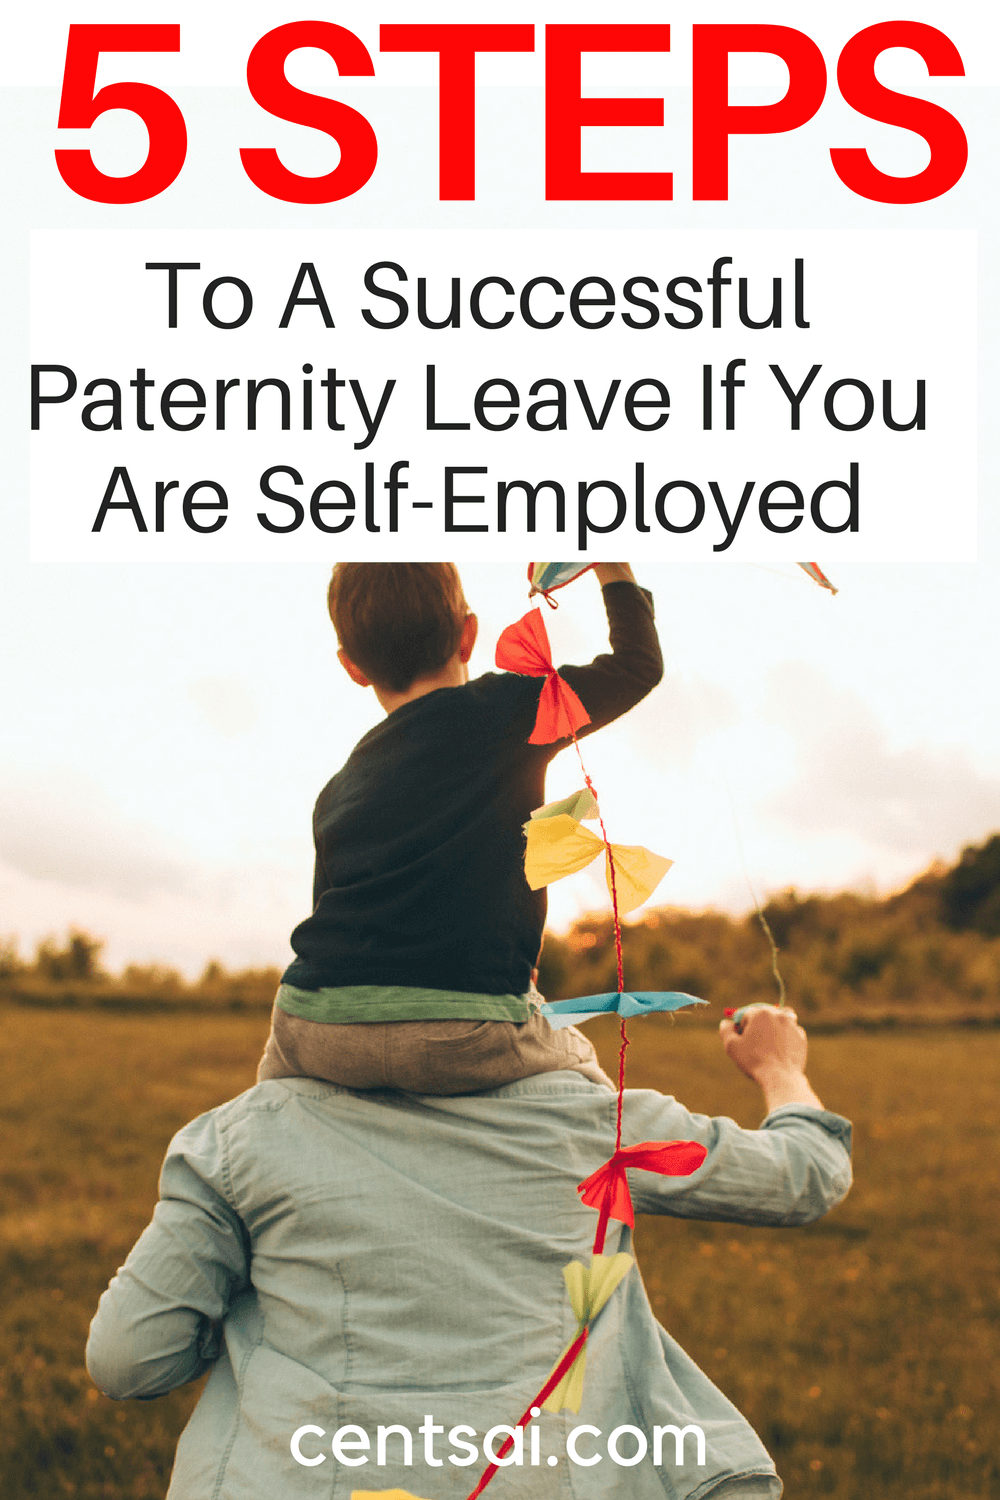 5 Steps To A Successful Paternity Leave If You Are Self-Employed. Working parents - both fathers and mothers - should be able to take time off for their newborn children... Even if they're self-employed.